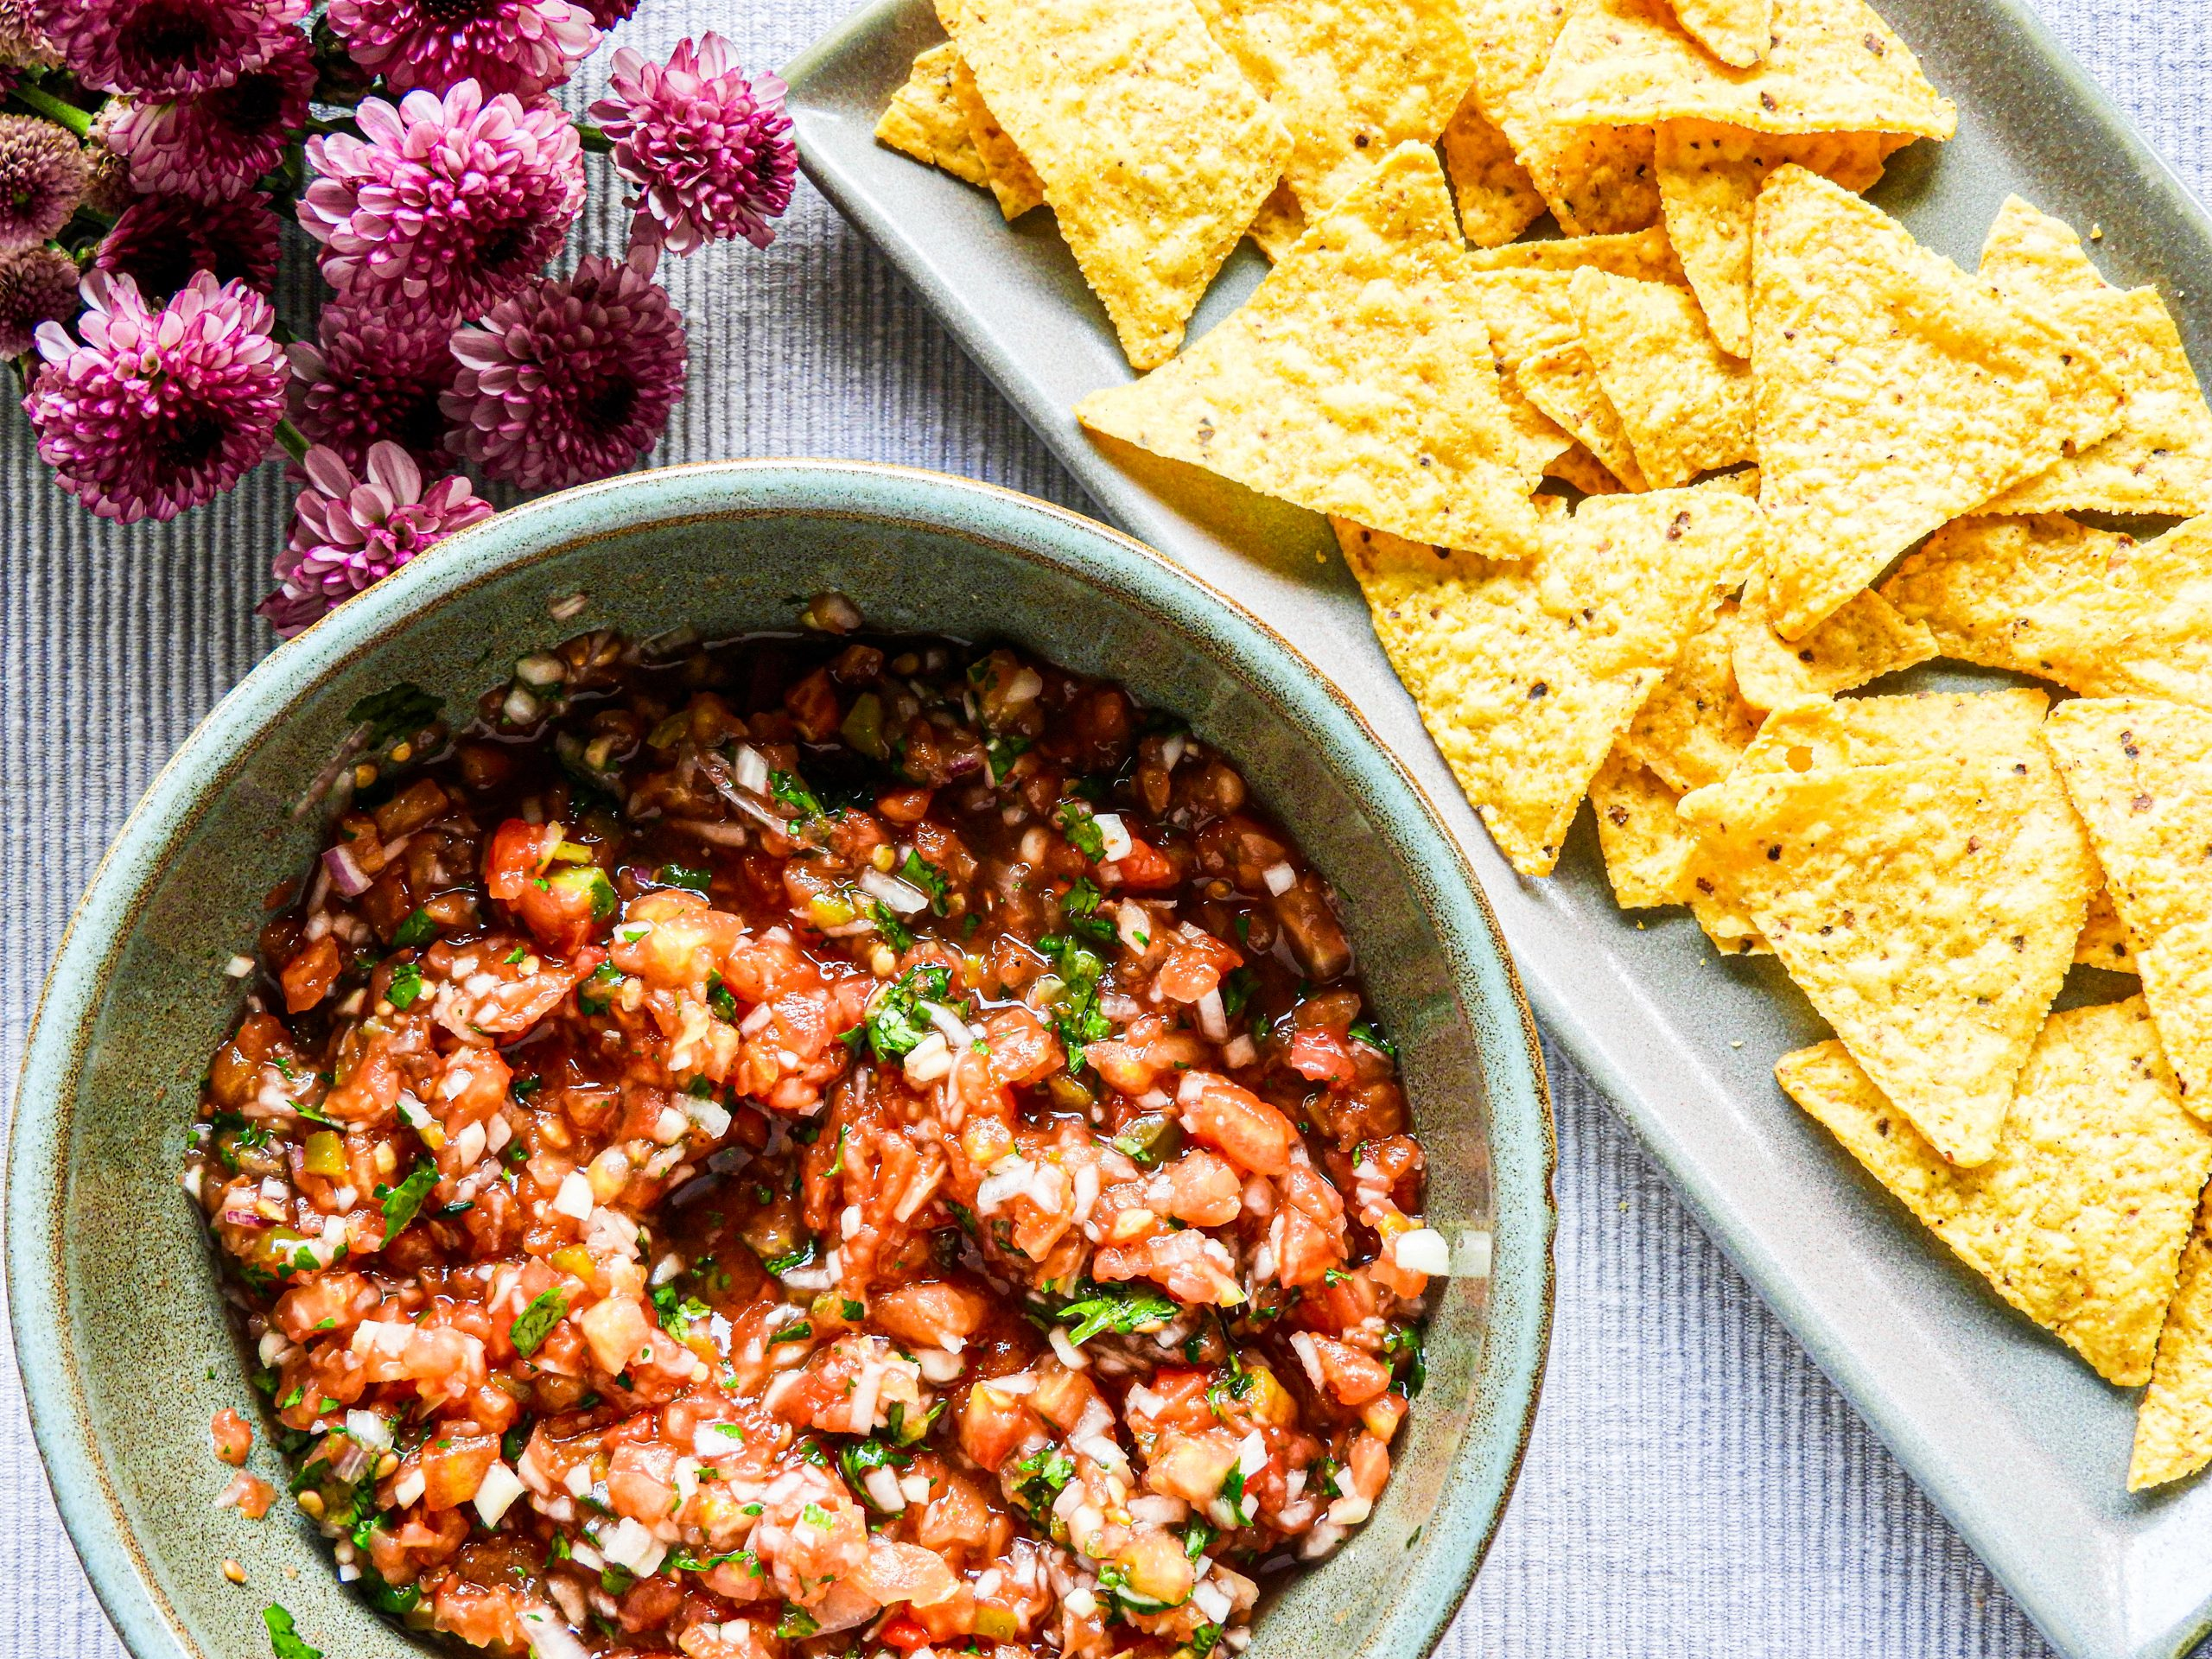 Tomato Salsa Dip with Nachos - Mexican Cuisine at Kitchen by Nidhi